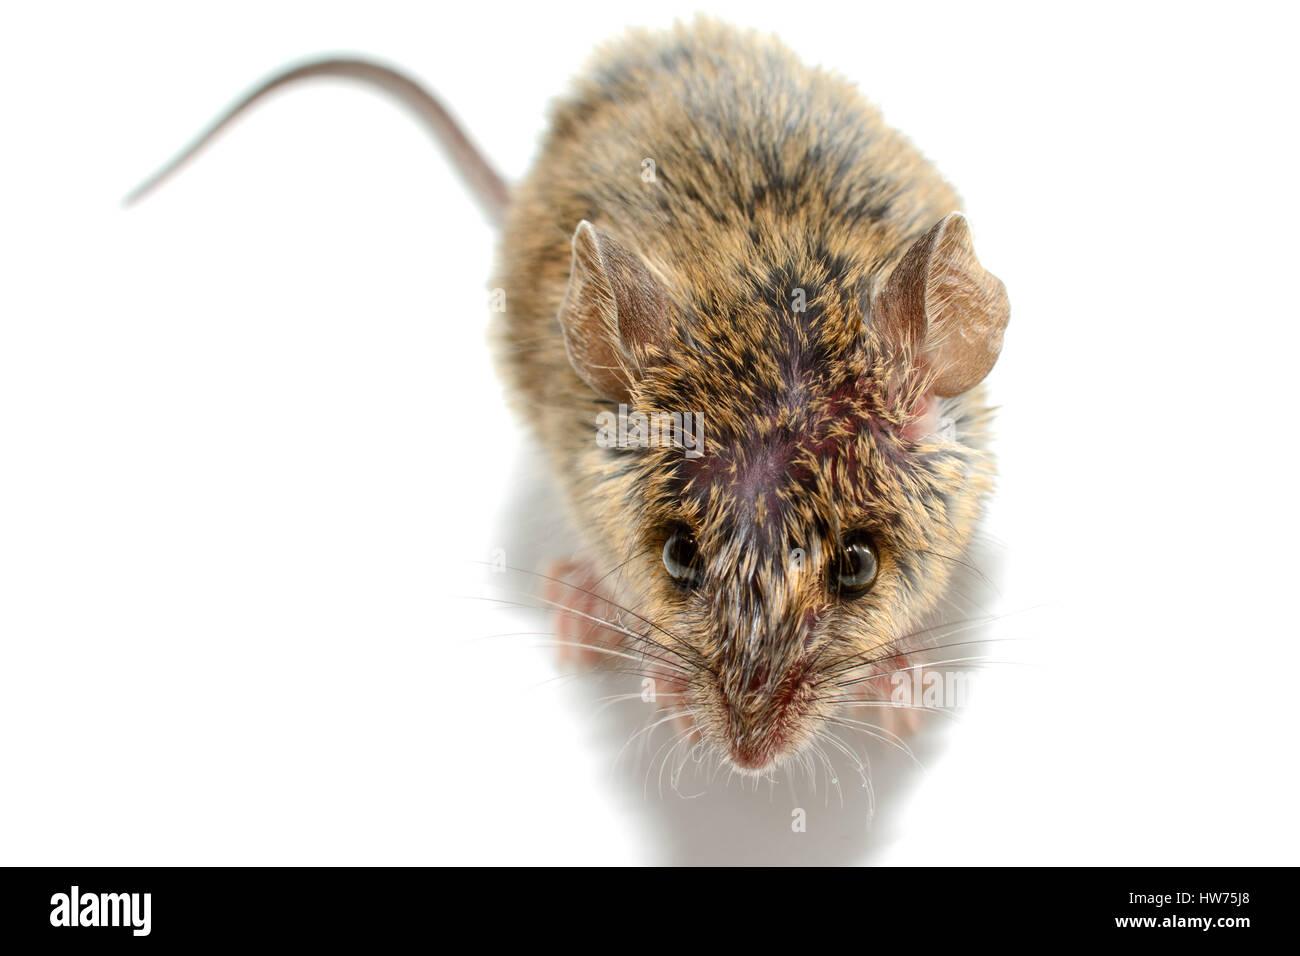 house mouse (Mus musculus) on white background Close-up above - Stock Image